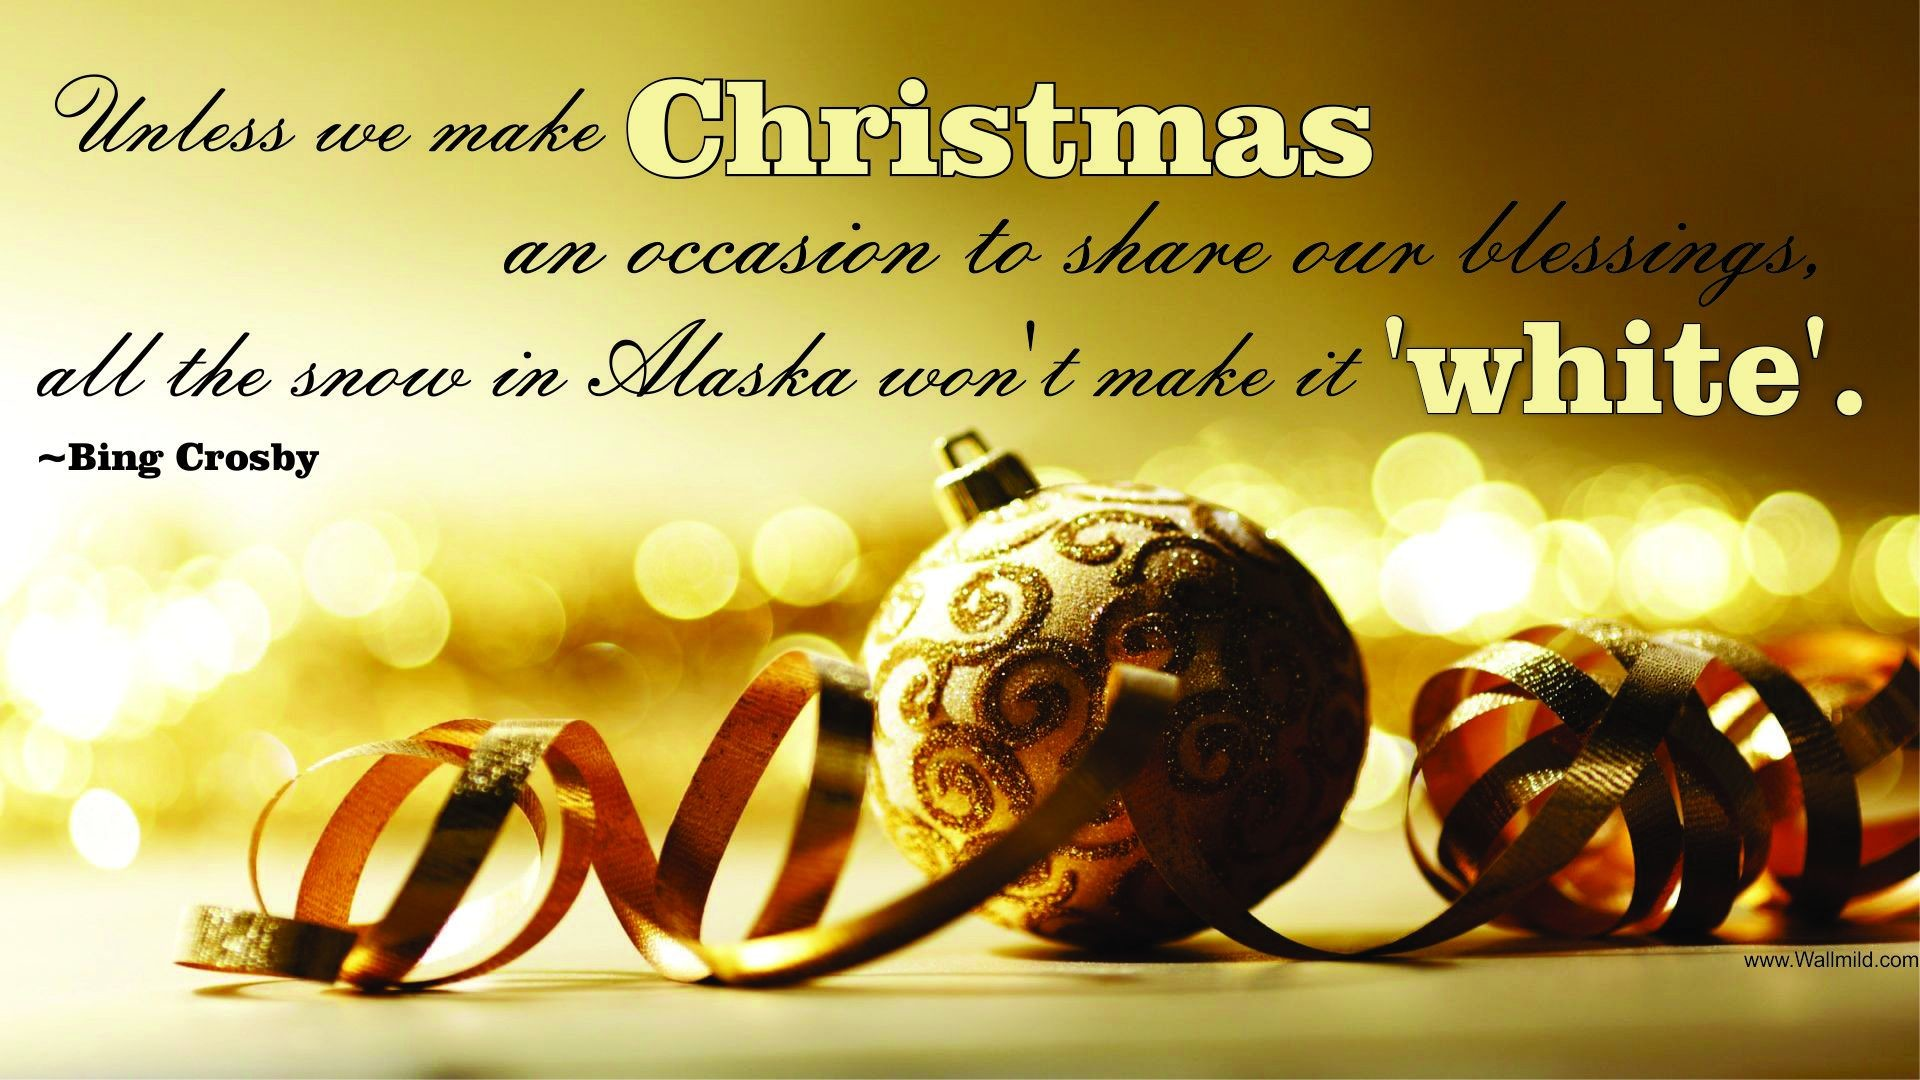 Merry Christmas Christian Quotes (18)